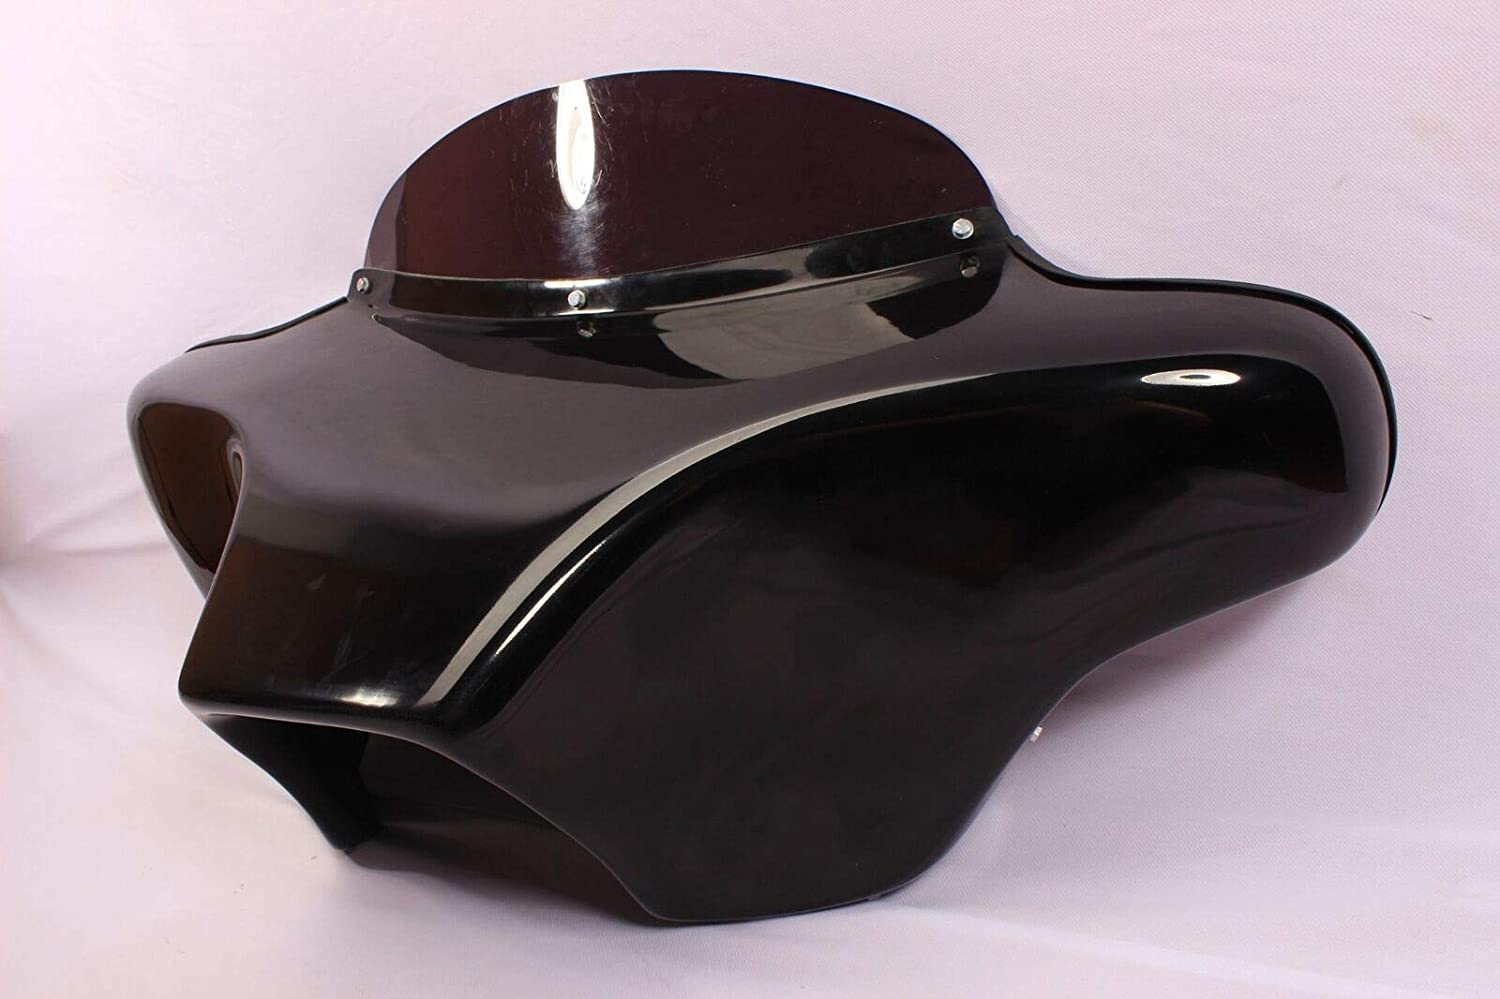 BAT F20 Batwing Fairing Windshield 4 Yamaha ROADSTAR Road Star 1600 1700 XV 1999-2009 Fiber USA F14 GC